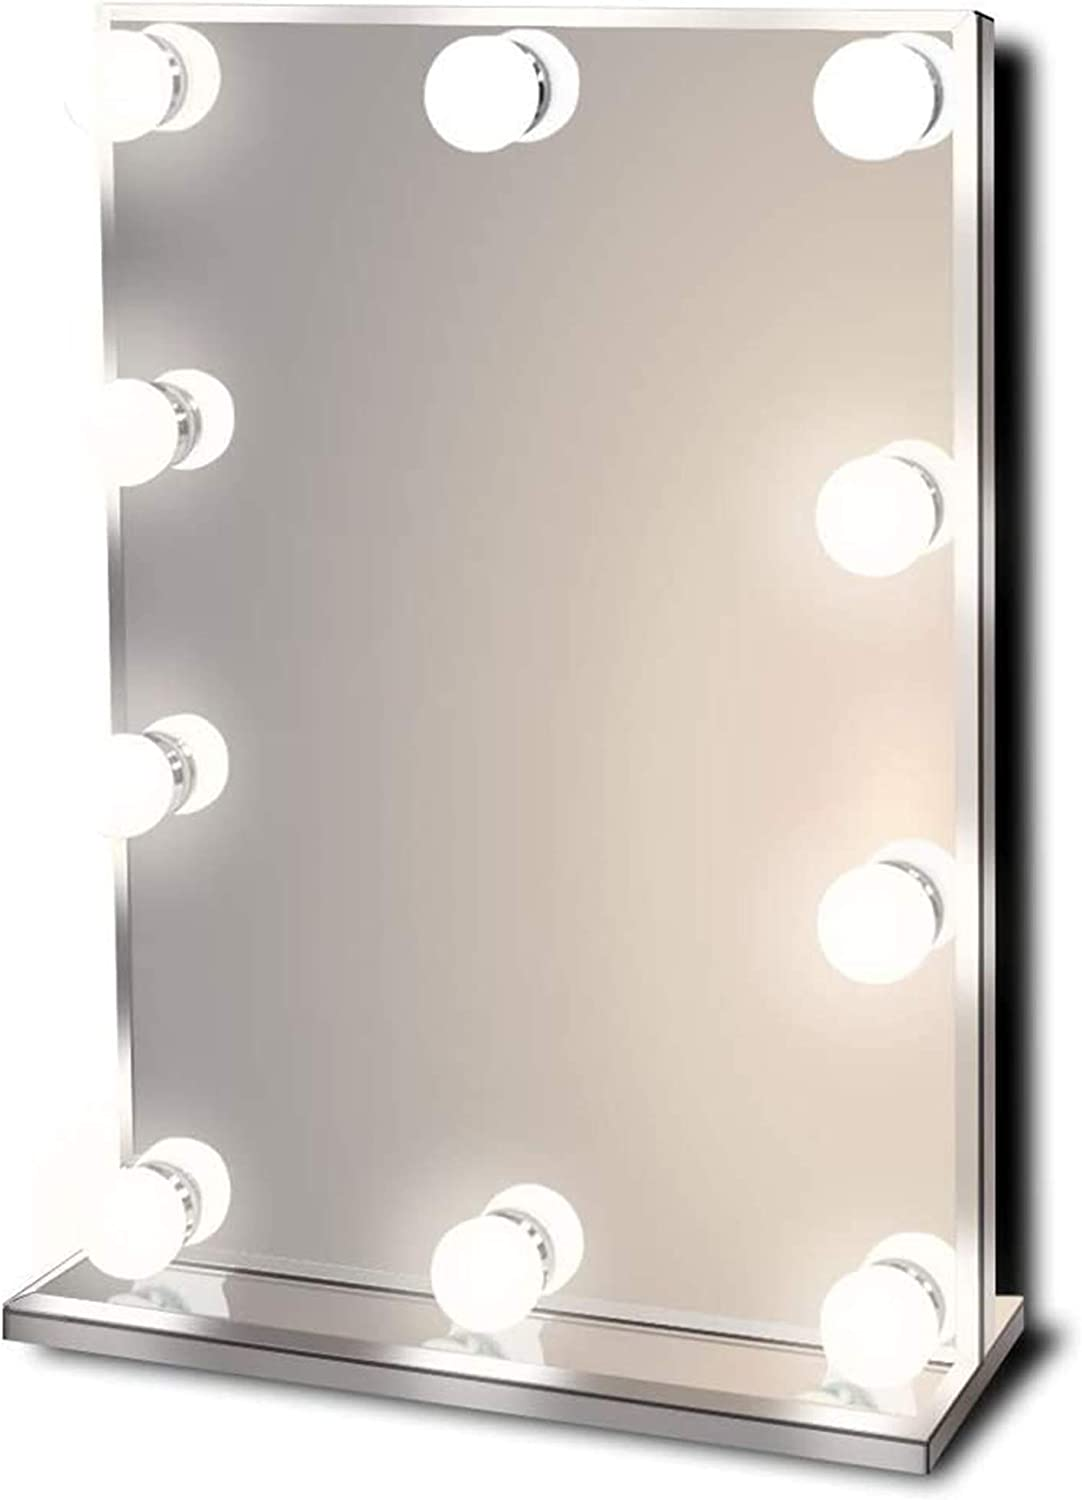 Waneway Hollywood Lighted Vanity Makeup Direct stock discount Max 71% OFF with LED Mirror L Bright